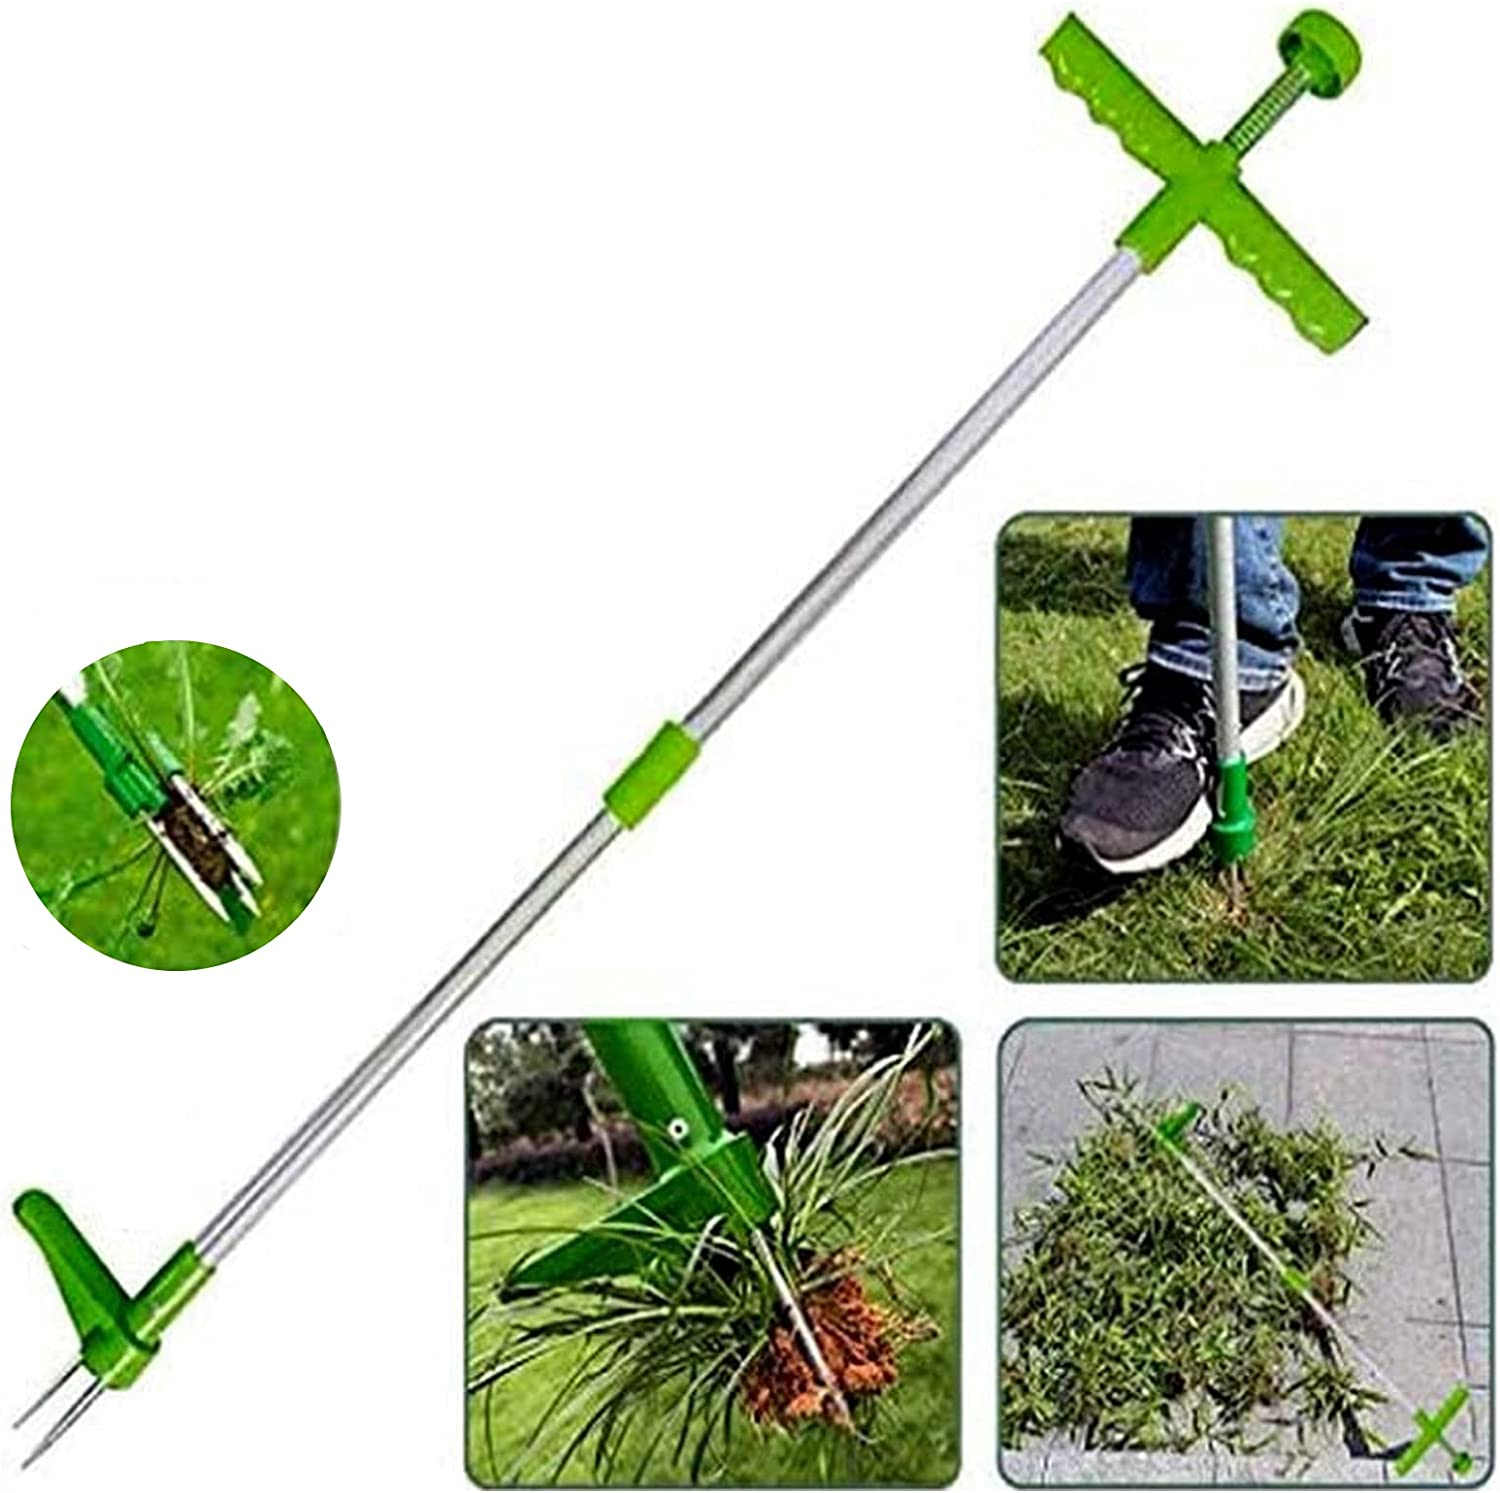 Assletes Stand-Up Weed Puller,Weeder Root Removal Tool for Garden, 39